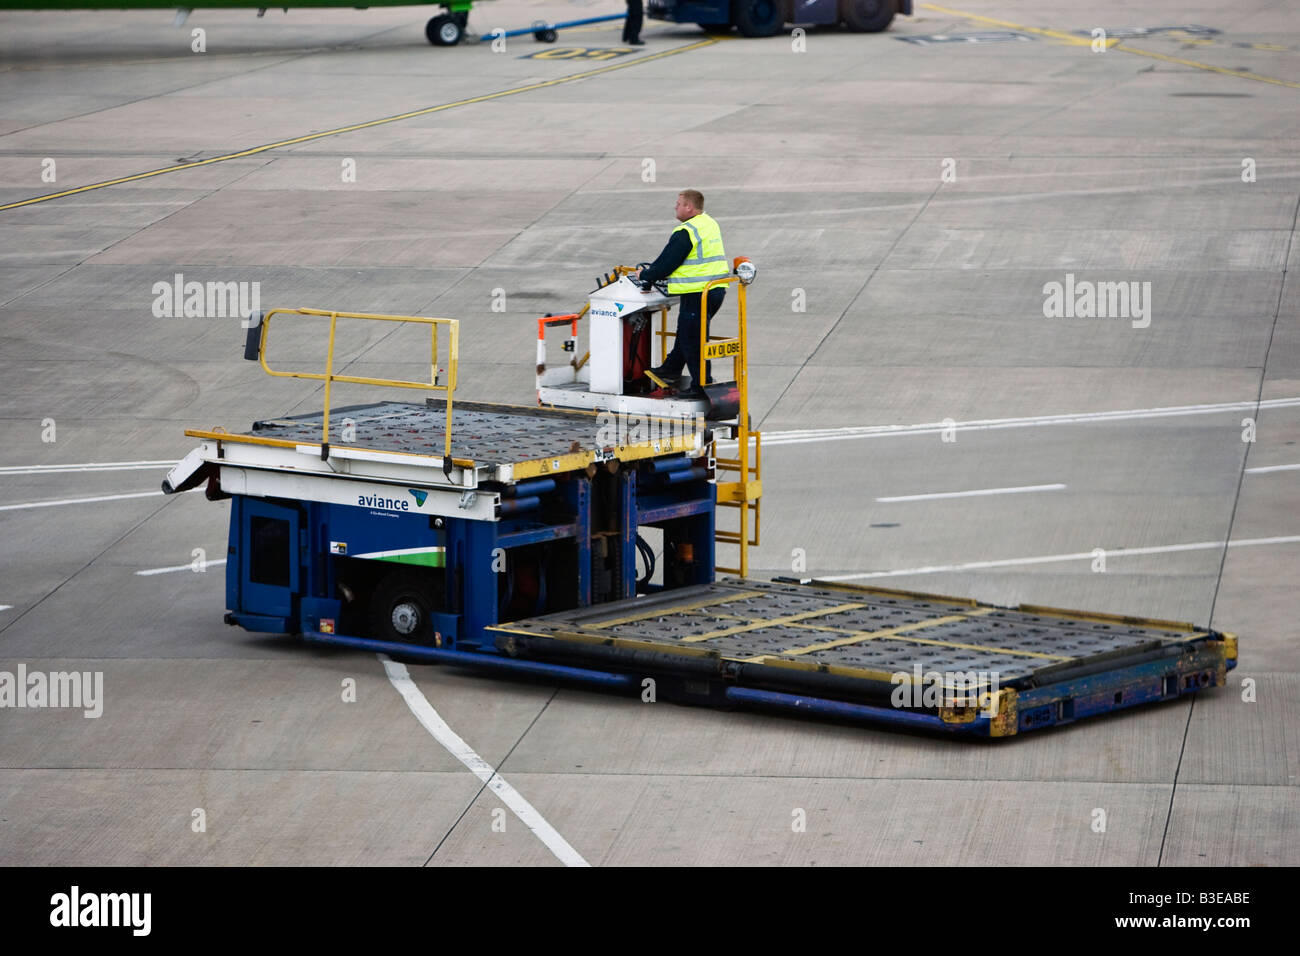 Air Side mobile luggage lift - Stock Image